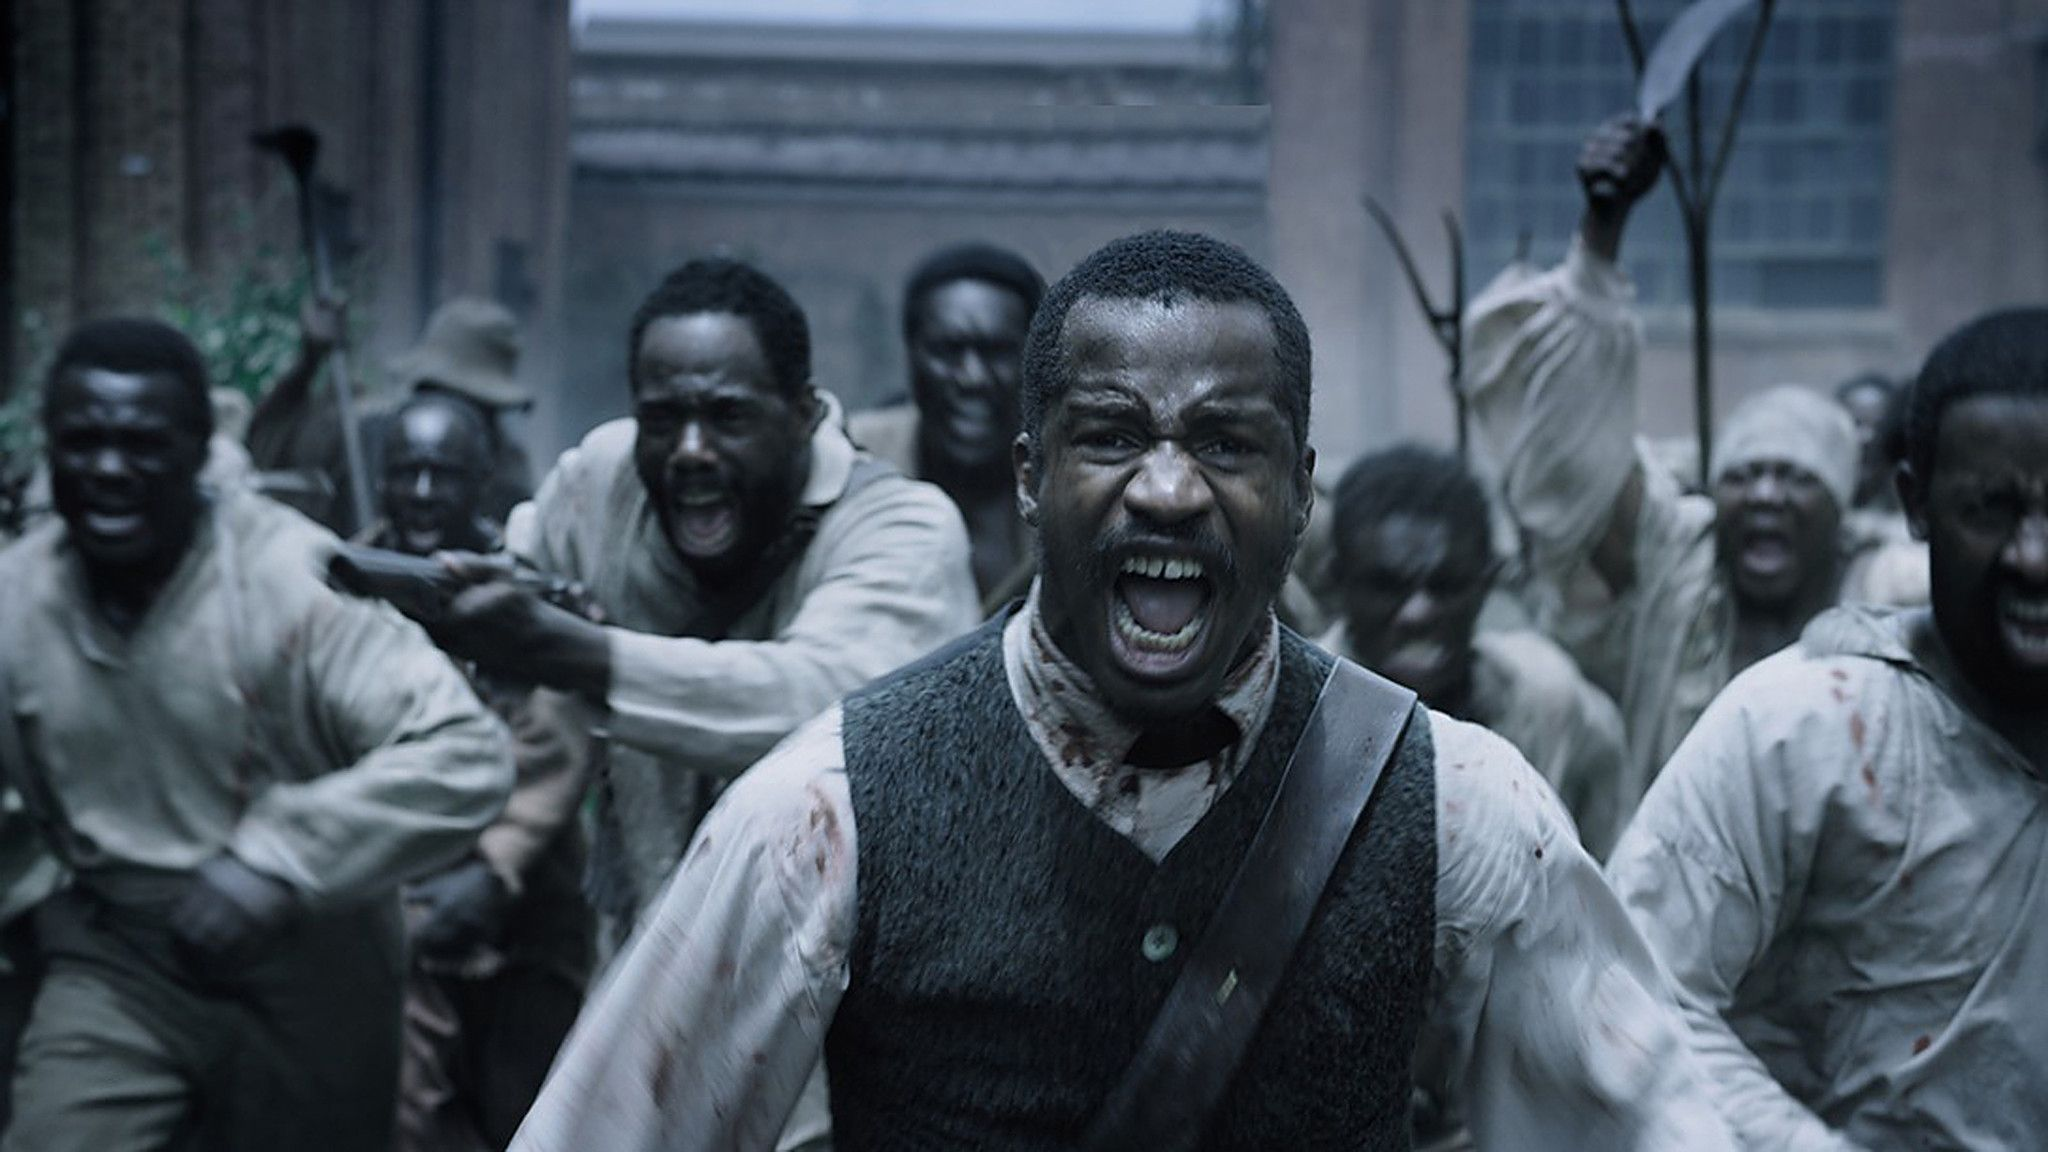 "<p>Based on the true story of Nat Turner's 1831 slave rebellion in Virginia, <em data-redactor-tag=""em"" data-verified=""redactor"">The </em><i data-redactor-tag=""i"">Birth of a Nation</i> follows a young Turner (Nate Parker) as he trains to become a preacher, ventures across the nation to preach, realizes just how widespread and violent slavery has become and ultimately takes action. Armie Hammer, Aja Naomi King, and Gabrielle Union also star in the film, which is the most expensive ever sold at Sundance Film Festival.</p><p>Watch the trailer <a href=""https://www.youtube.com/watch?v=i18z1EQCoyg"" target=""_blank"">here</a>.</p>"